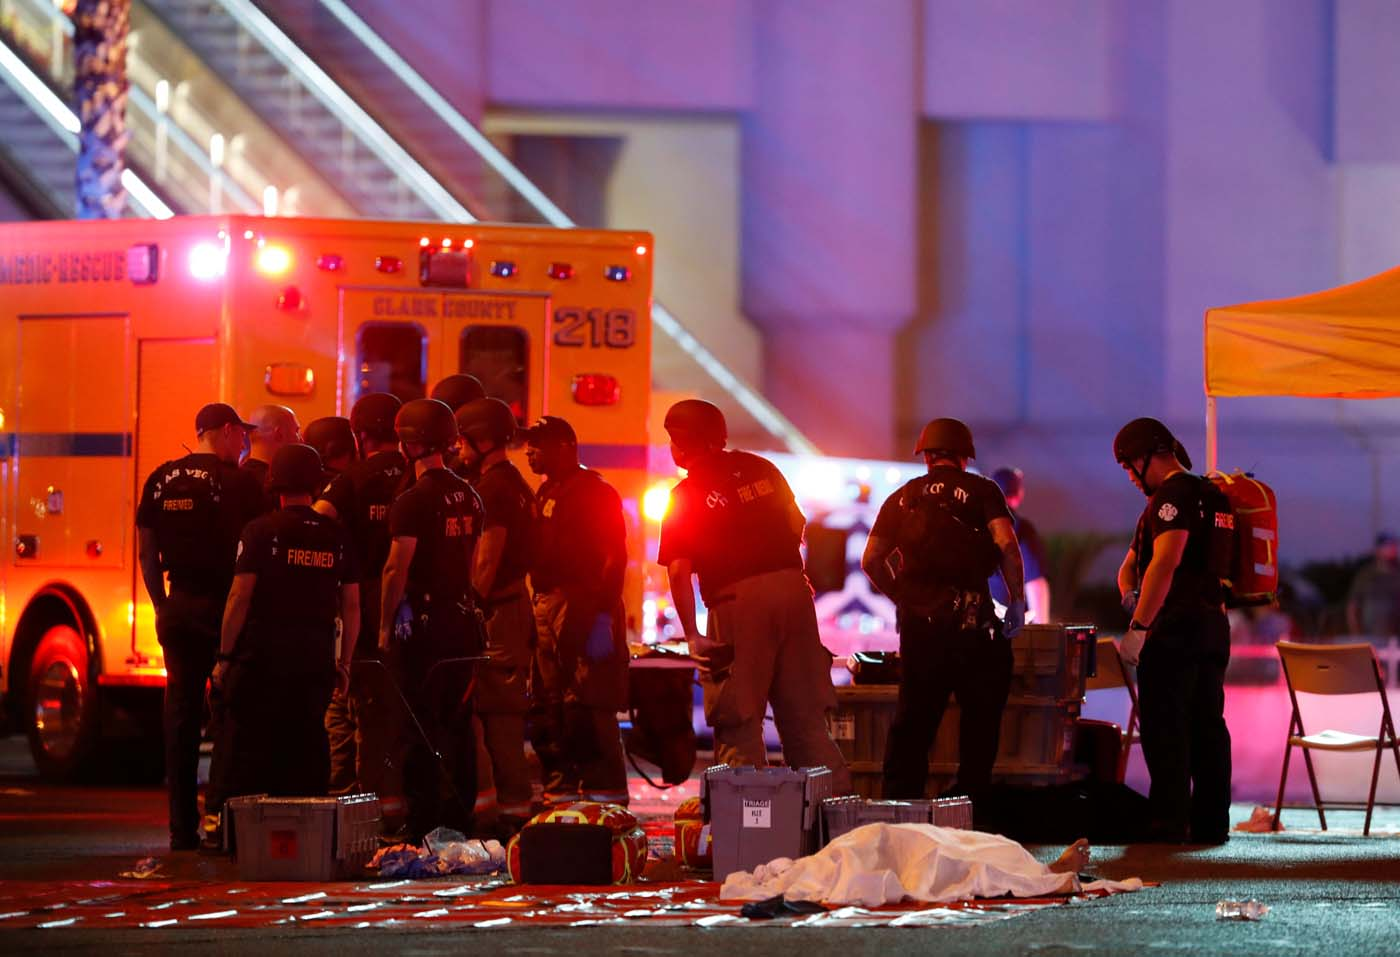 ATTENTION EDITORS - VISUAL COVERAGE OF SCENES OF INJURY OR DEATH A body is covered with a sheet in the intersection of Tropicana Avenue and Las Vegas Boulevard South after a mass shooting at a music festival on the Las Vegas Strip in Las Vegas, Nevada, U.S. October 1, 2017. REUTERS/Las Vegas Sun/Steve Marcus TPX IMAGES OF THE DAY